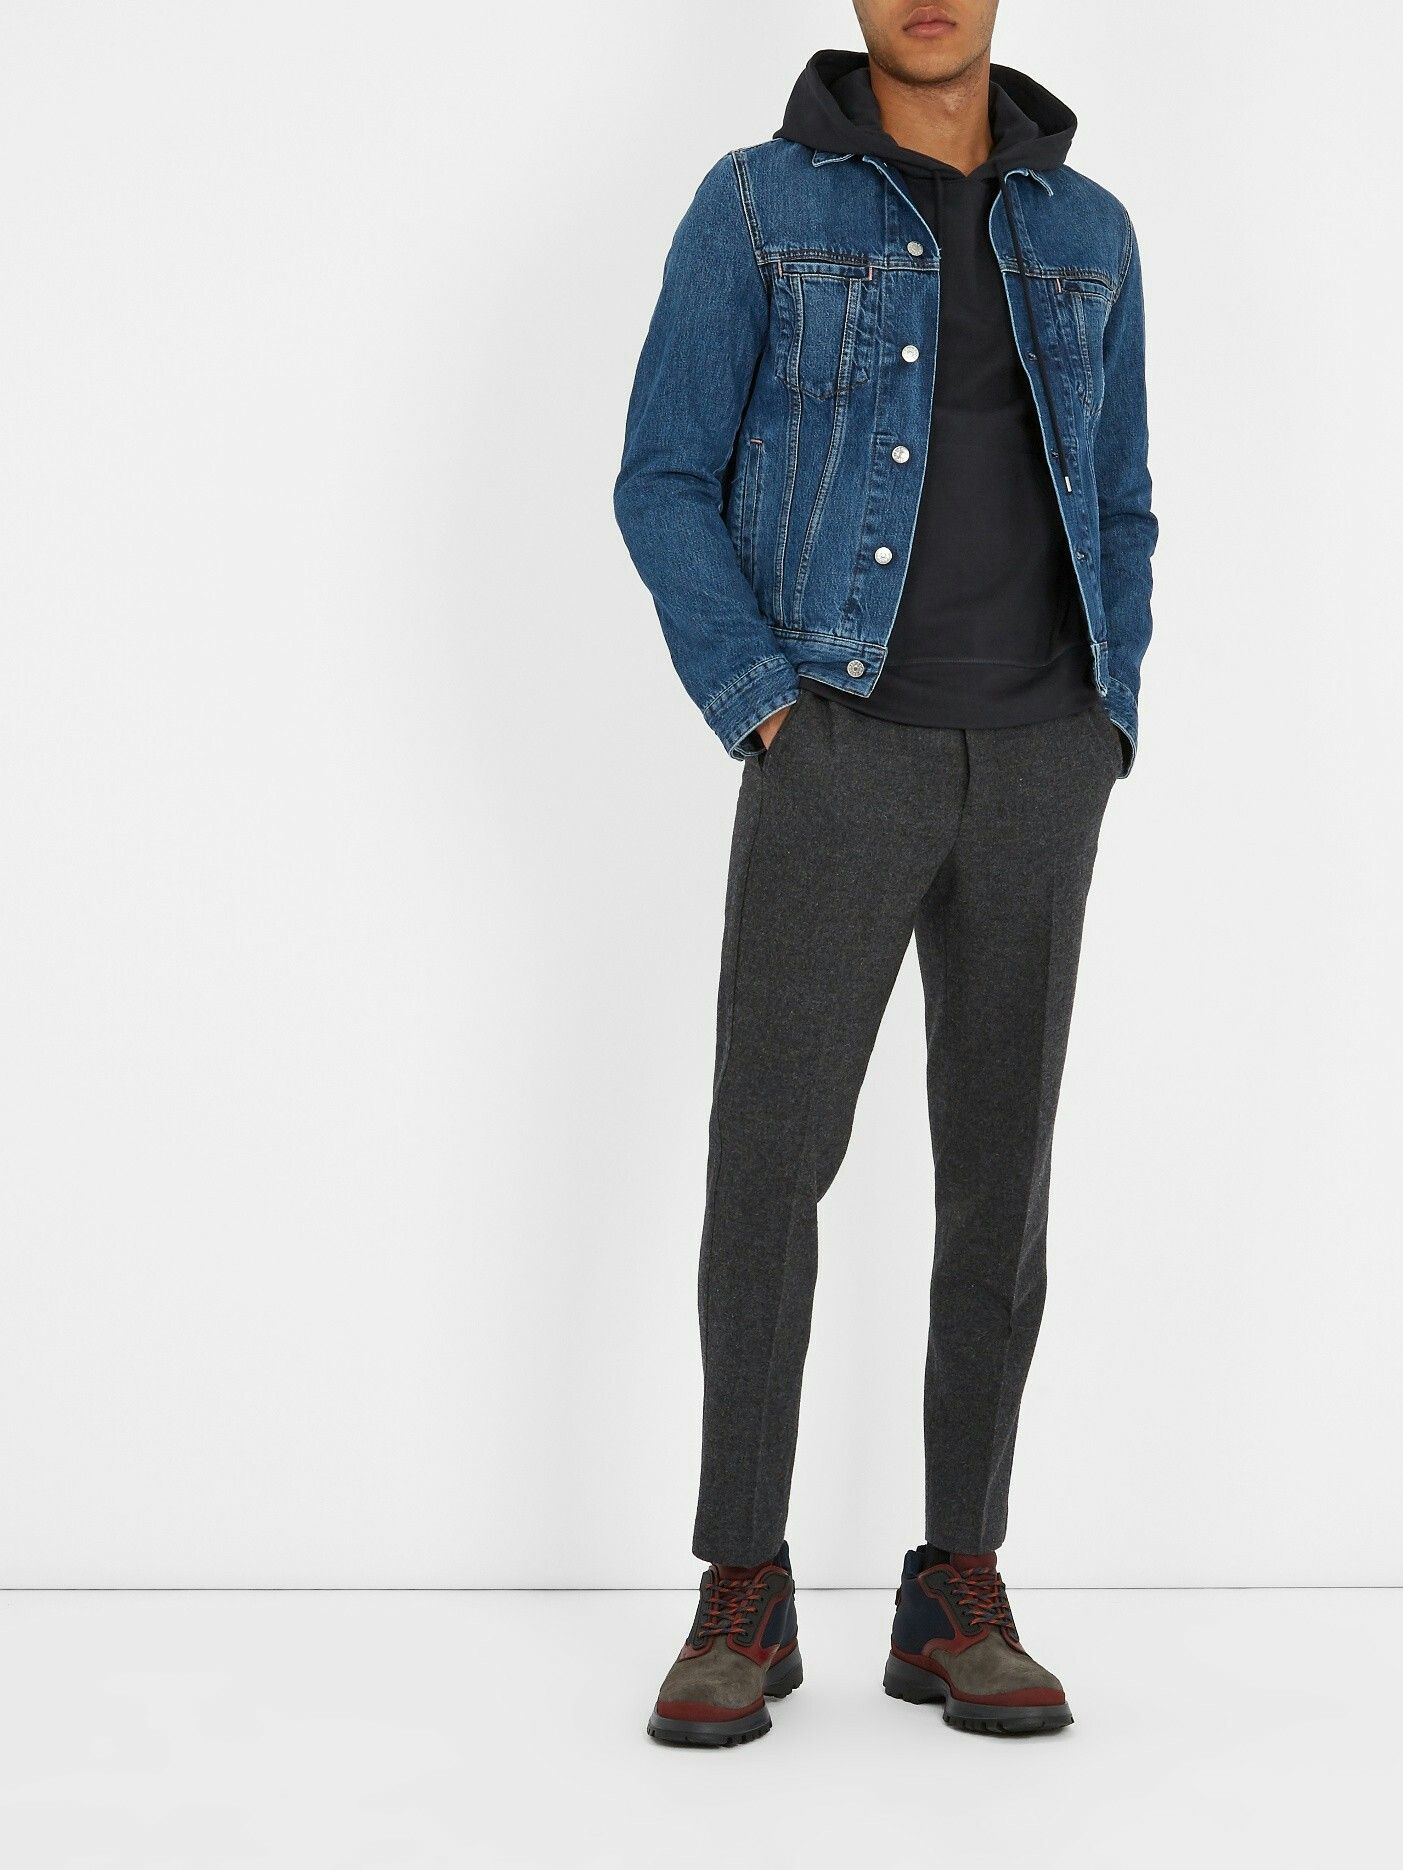 6089559e804 ACNE STUDIOS Pass denim jacket £300        PreviousNext